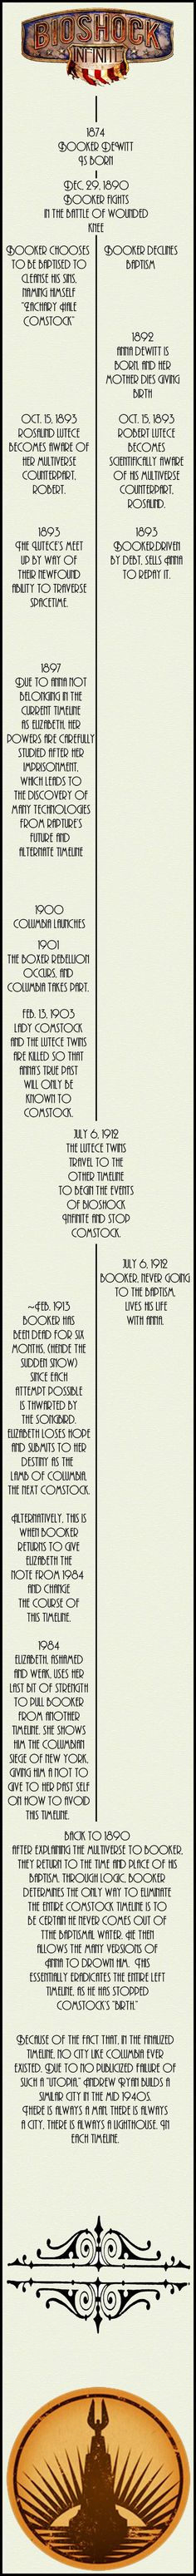 #Bioshock *SPOILERS* Bioshock #Infinite Story Line/ Timeline, you know in case anyone was confused.... booker dewitt and elizabeth